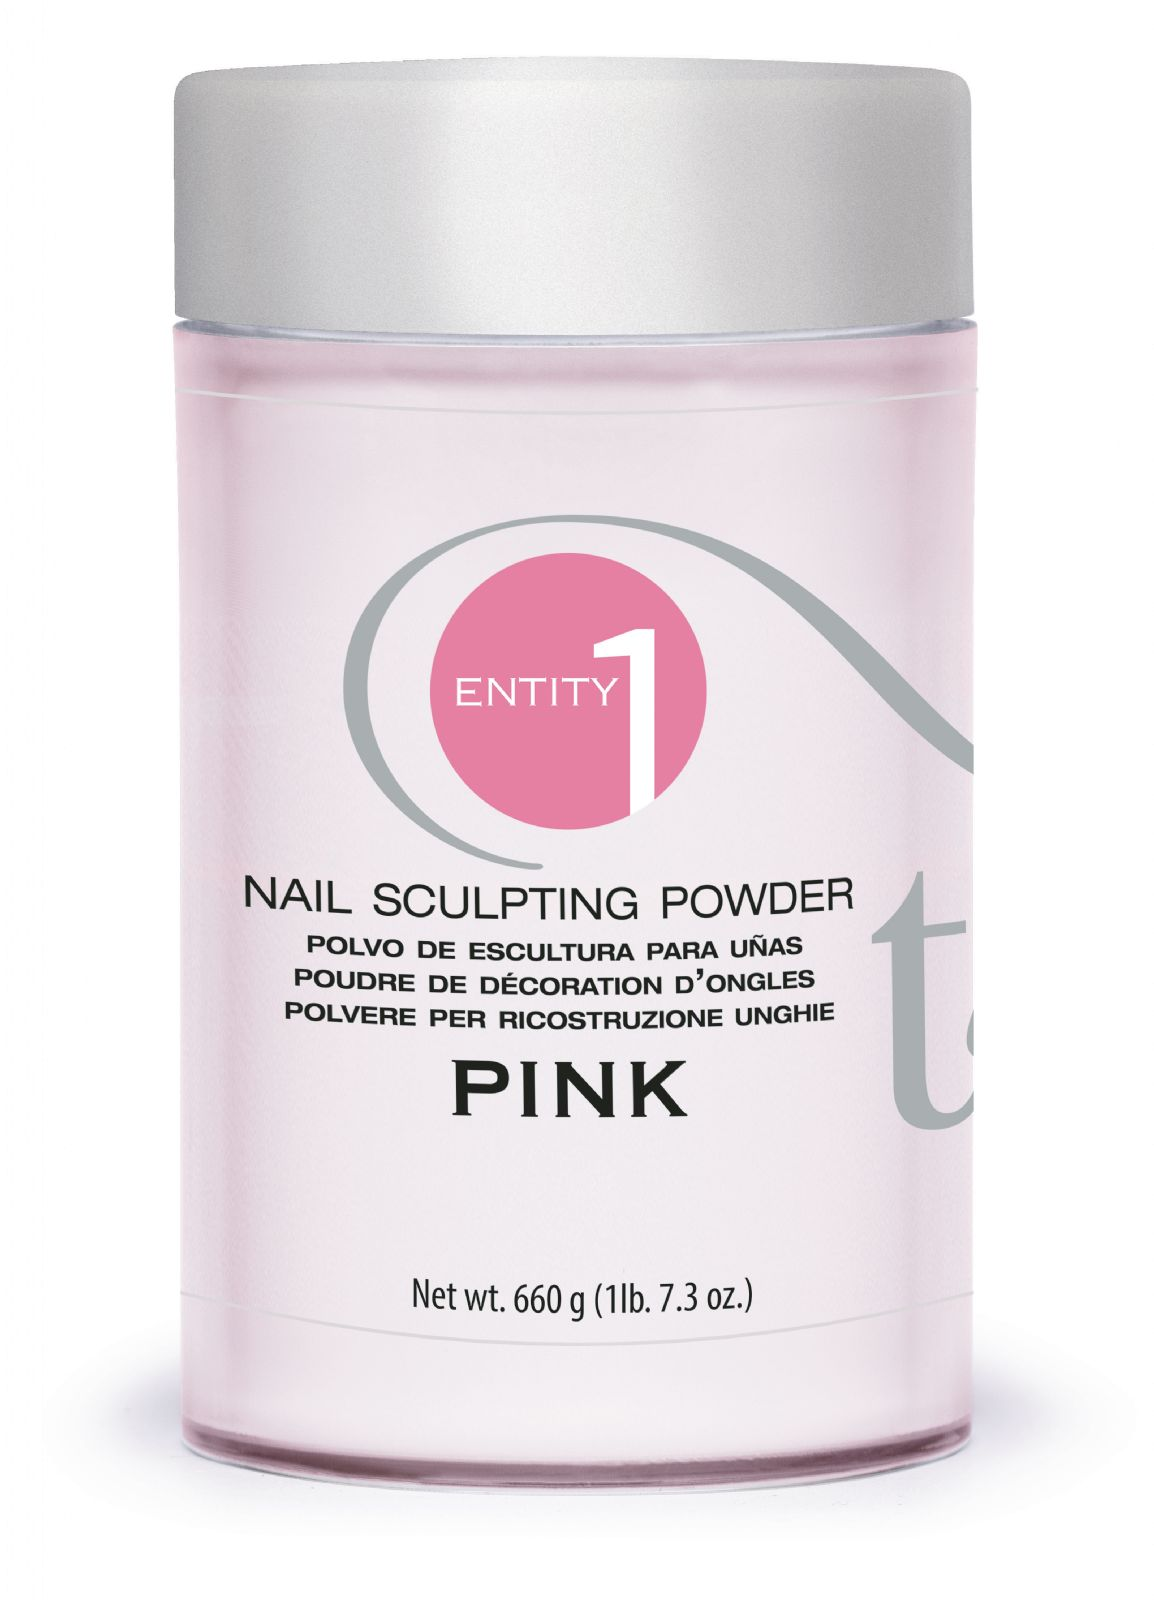 Best Nail Lamps – Opinions and Prices